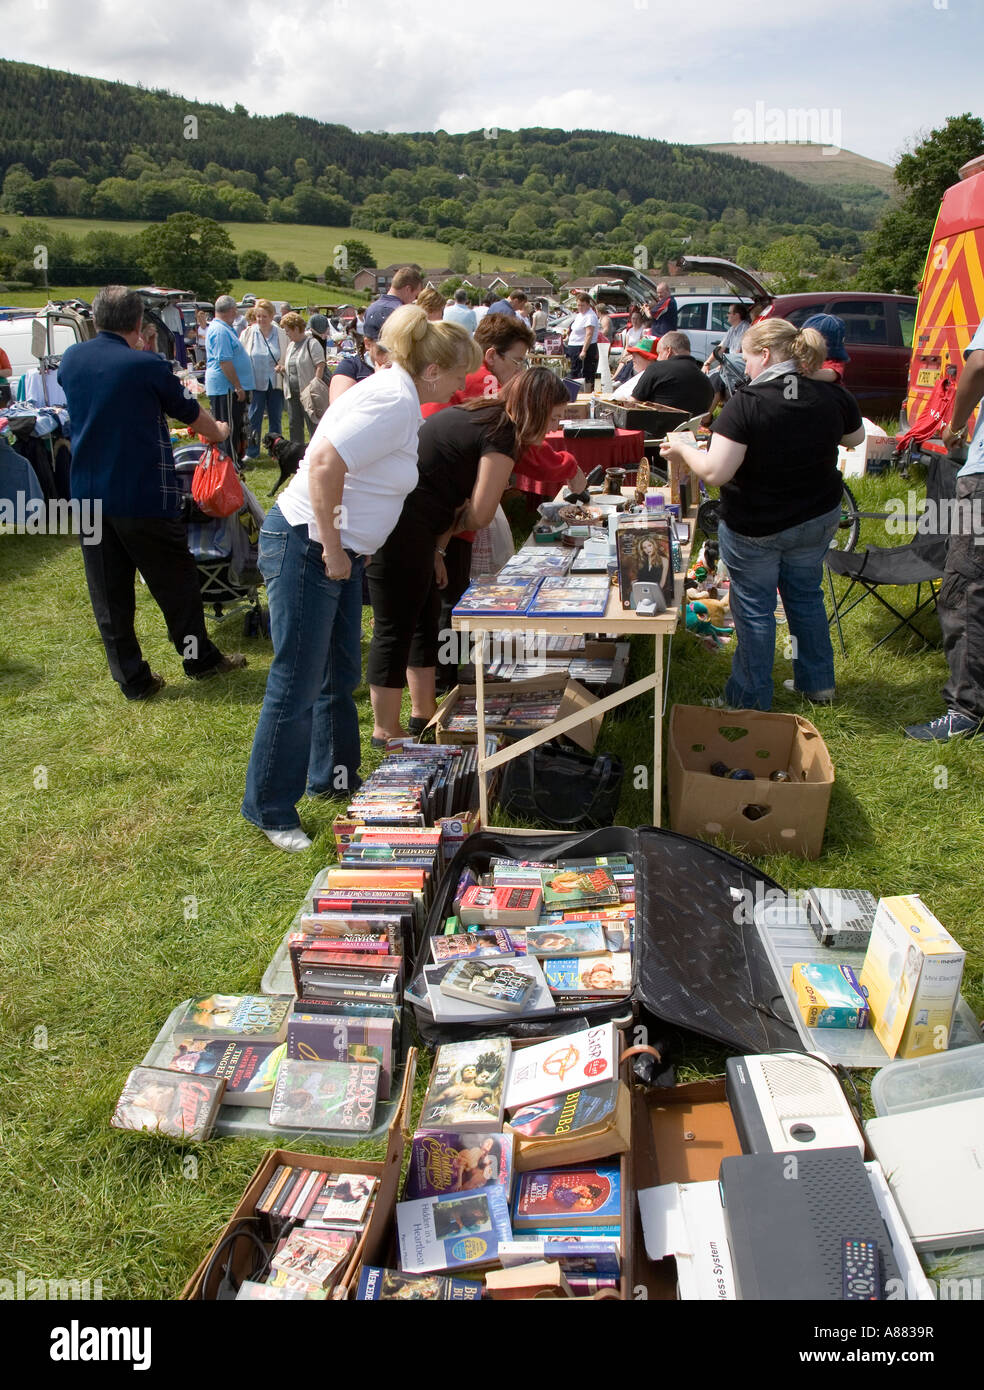 Books and household goods on display at car boot sale wales uk stock image